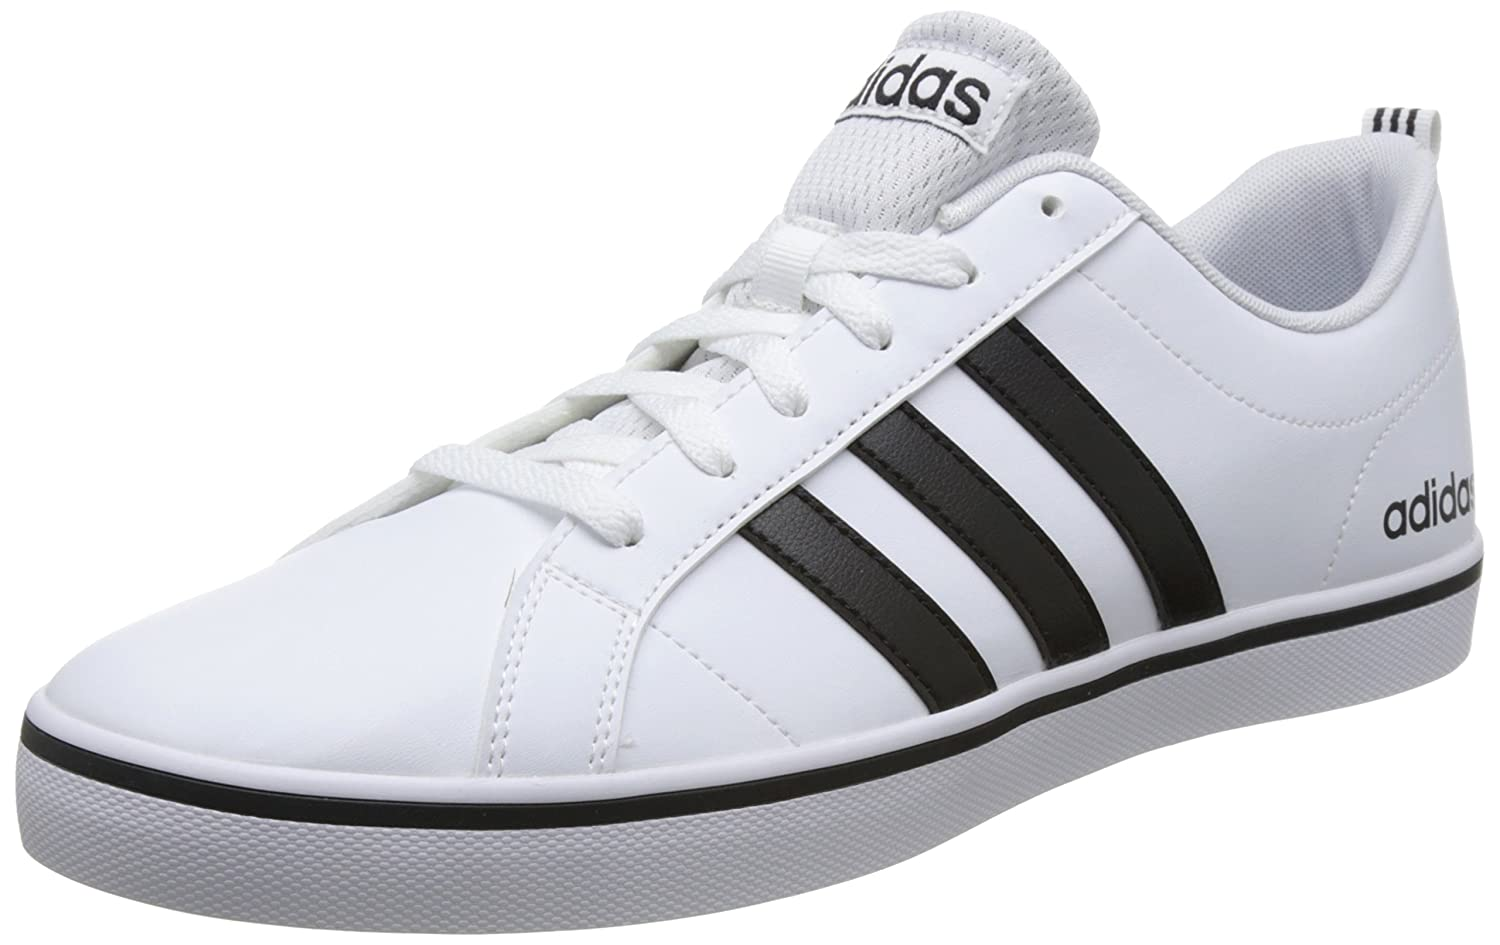 adidas Originals PACE VS Sneakers Unisex